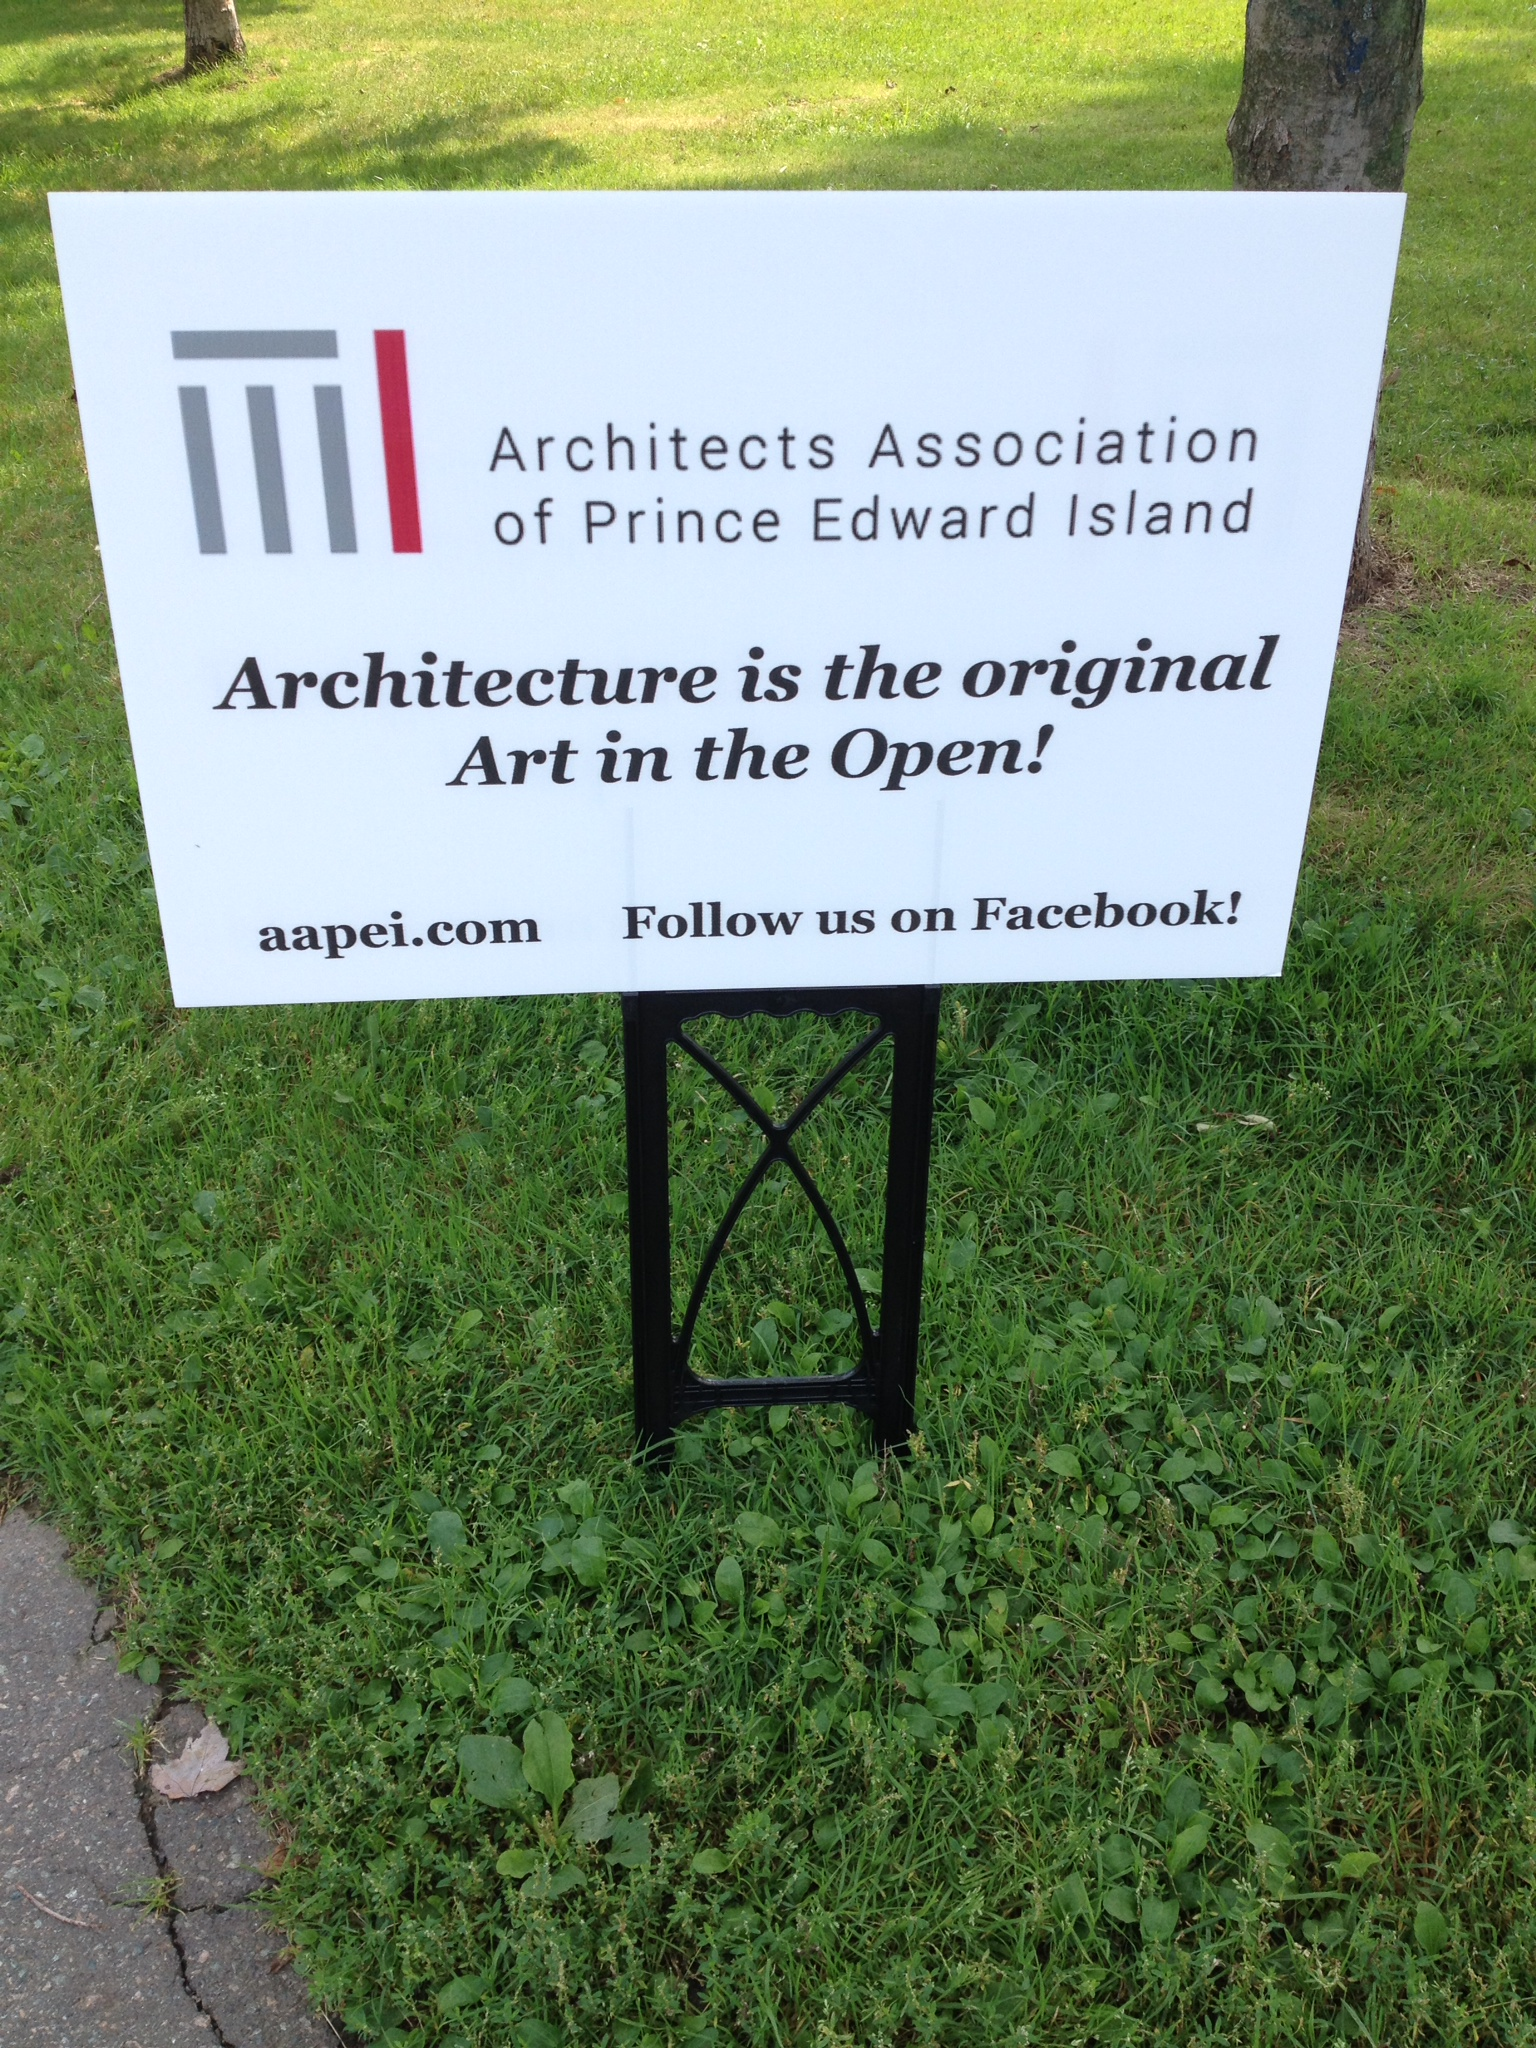 Art in the Open 2015 - Architects Association of Prince